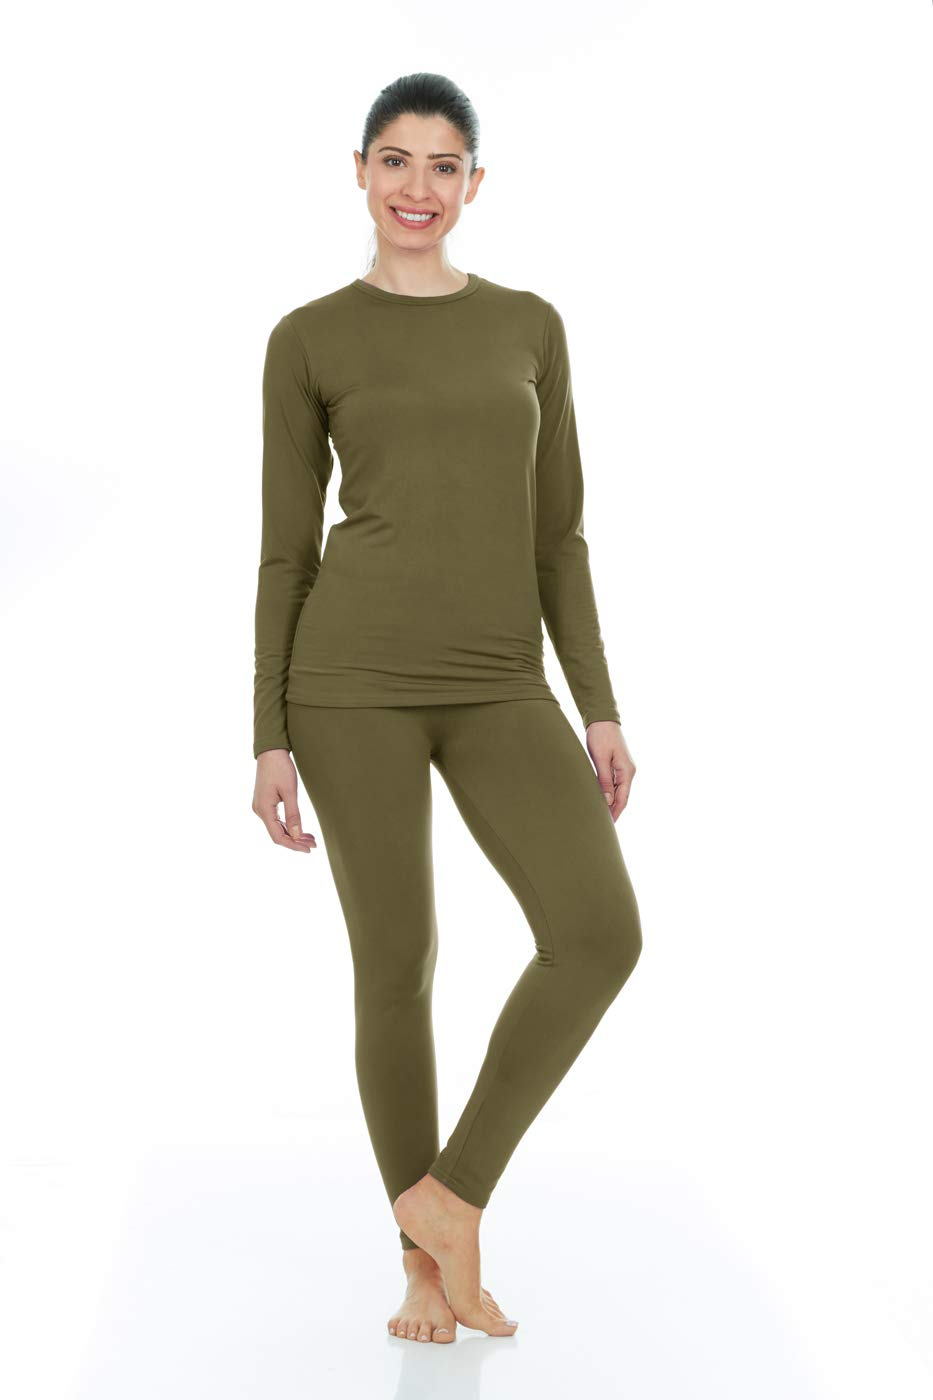 Thermajane Women's Ultra Soft Thermal Underwear Long Johns Set with Fleece Lined (X-Small, Green)